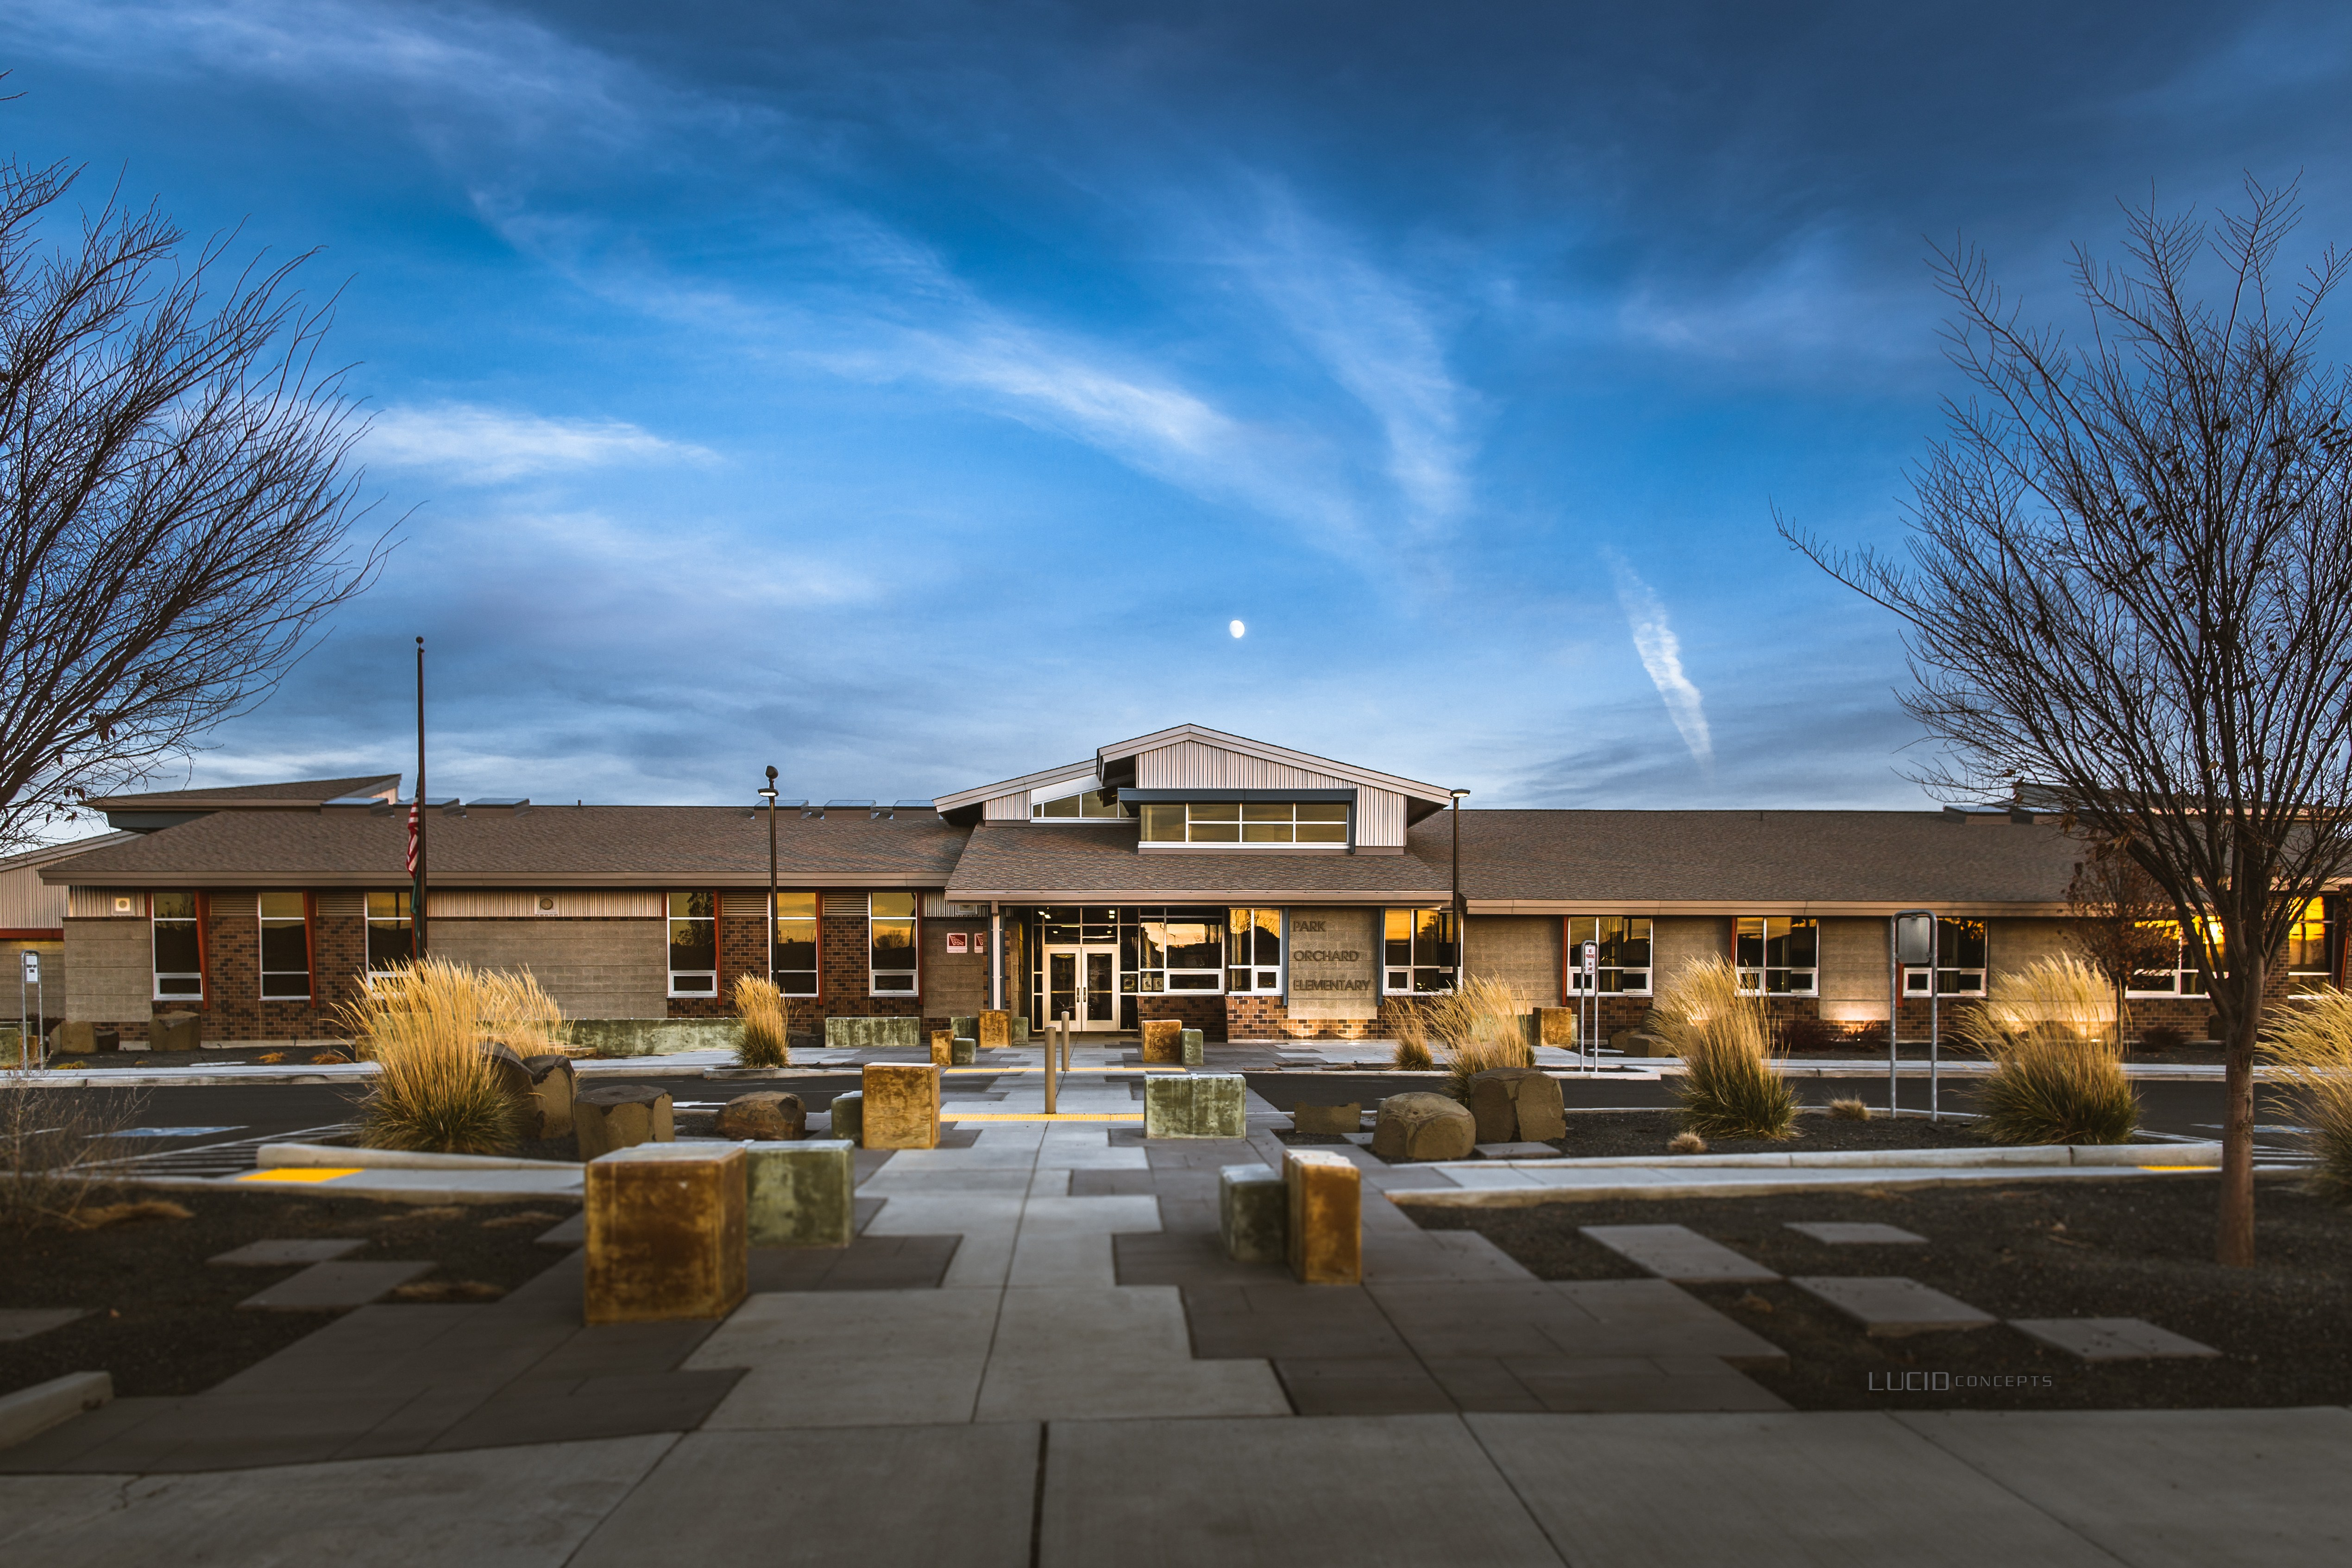 Park Orchard Elementary, built in 2011